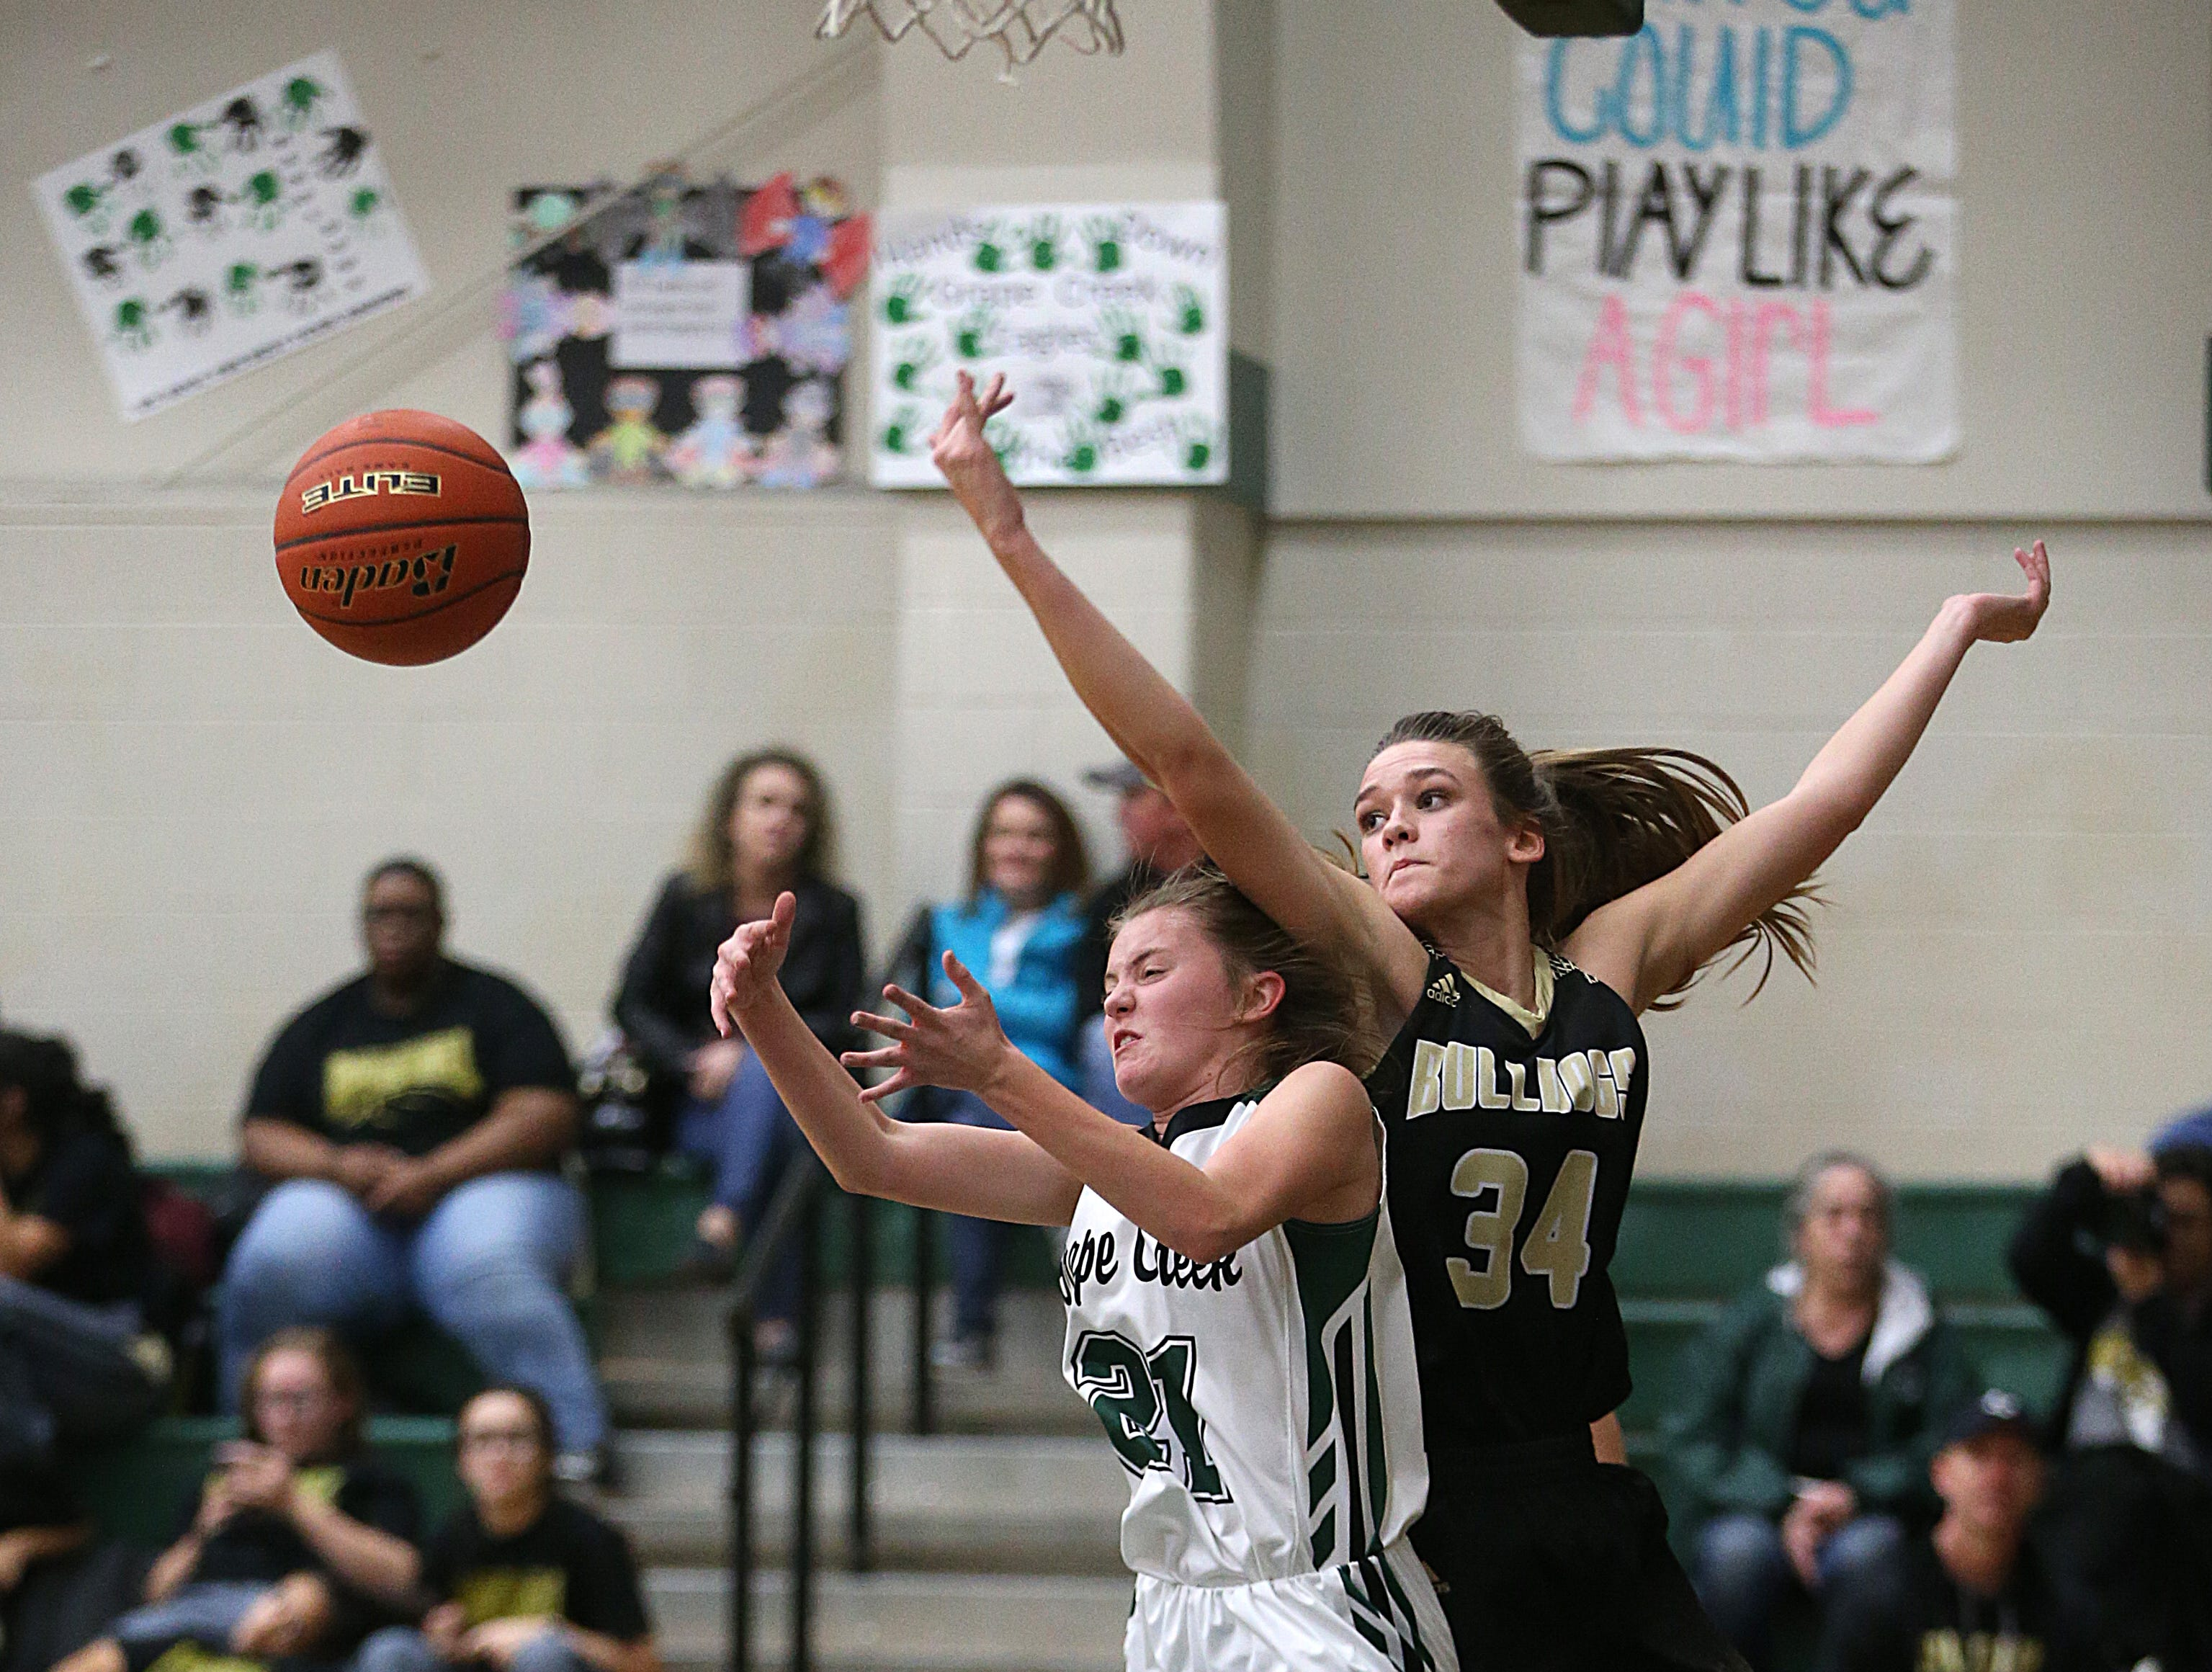 Grape Creek's Kimmy Salisbury (#21) misses a shot as Brady's Whitney Everett (#34) tries to recover it Friday, Dec. 14, 2018 during their game in Grape Creek. Brady won 48 to 28.